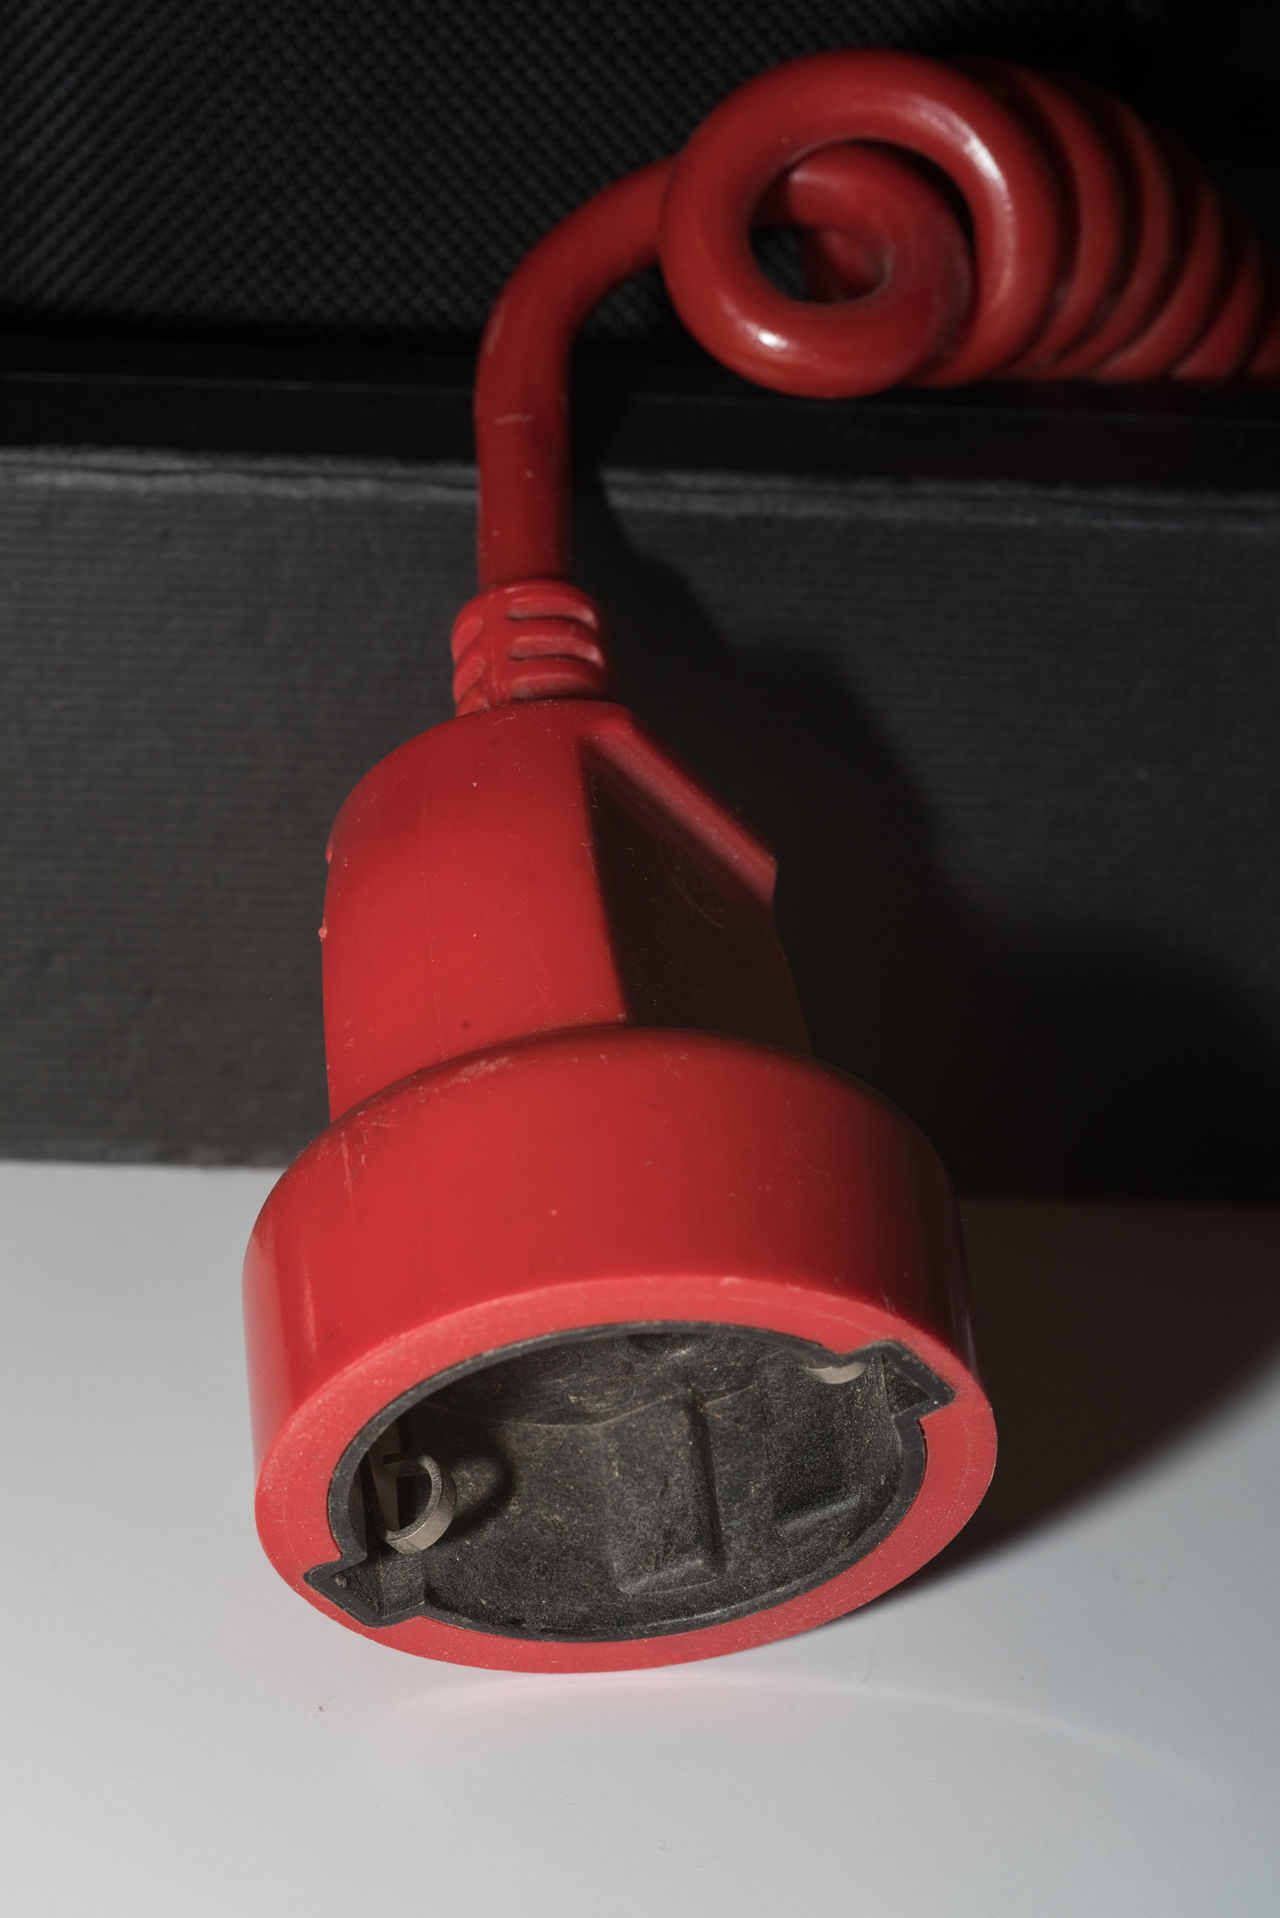 More or less useless and dusty objects in my bureau: AC-Cable - useful AC/DC Plug Close Up Close-up Illuminated Indoors  Indoorsphotography Macro No People One Object Plug Protection Red Safety Spiral Cable Studio